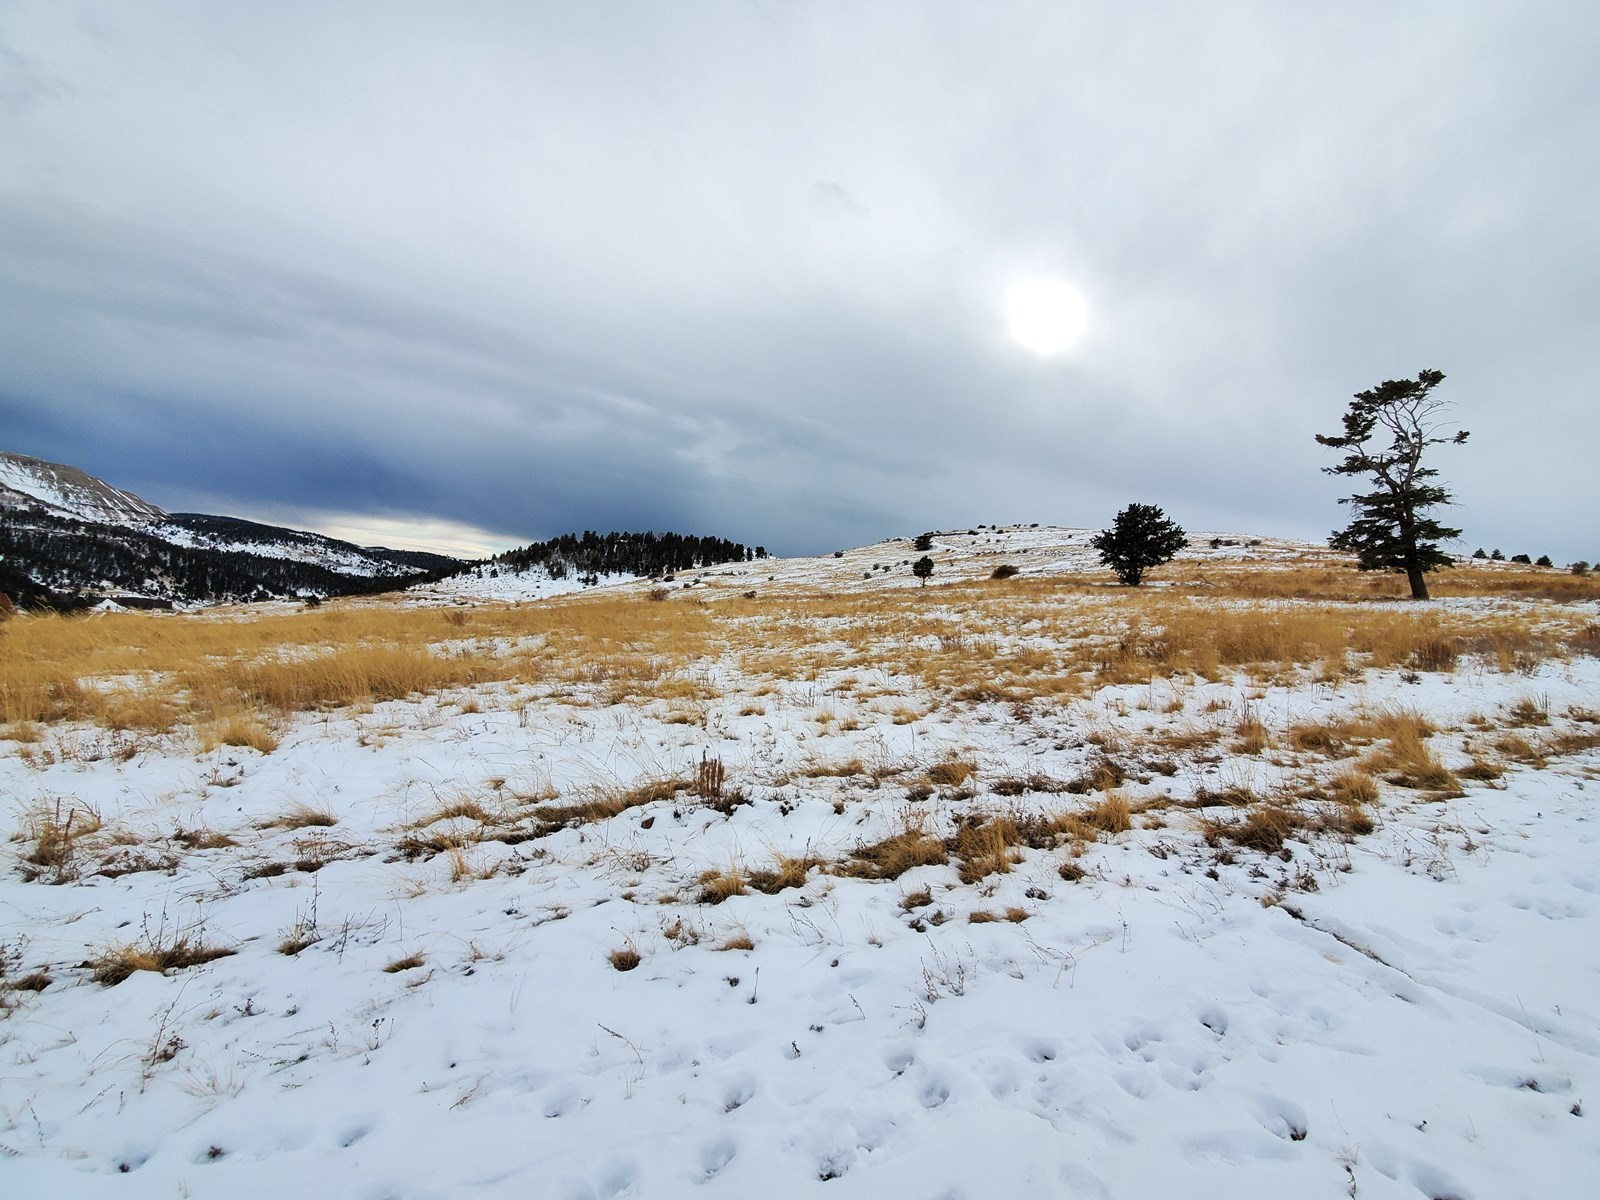 Land for Sale in Cripple Creek near Town